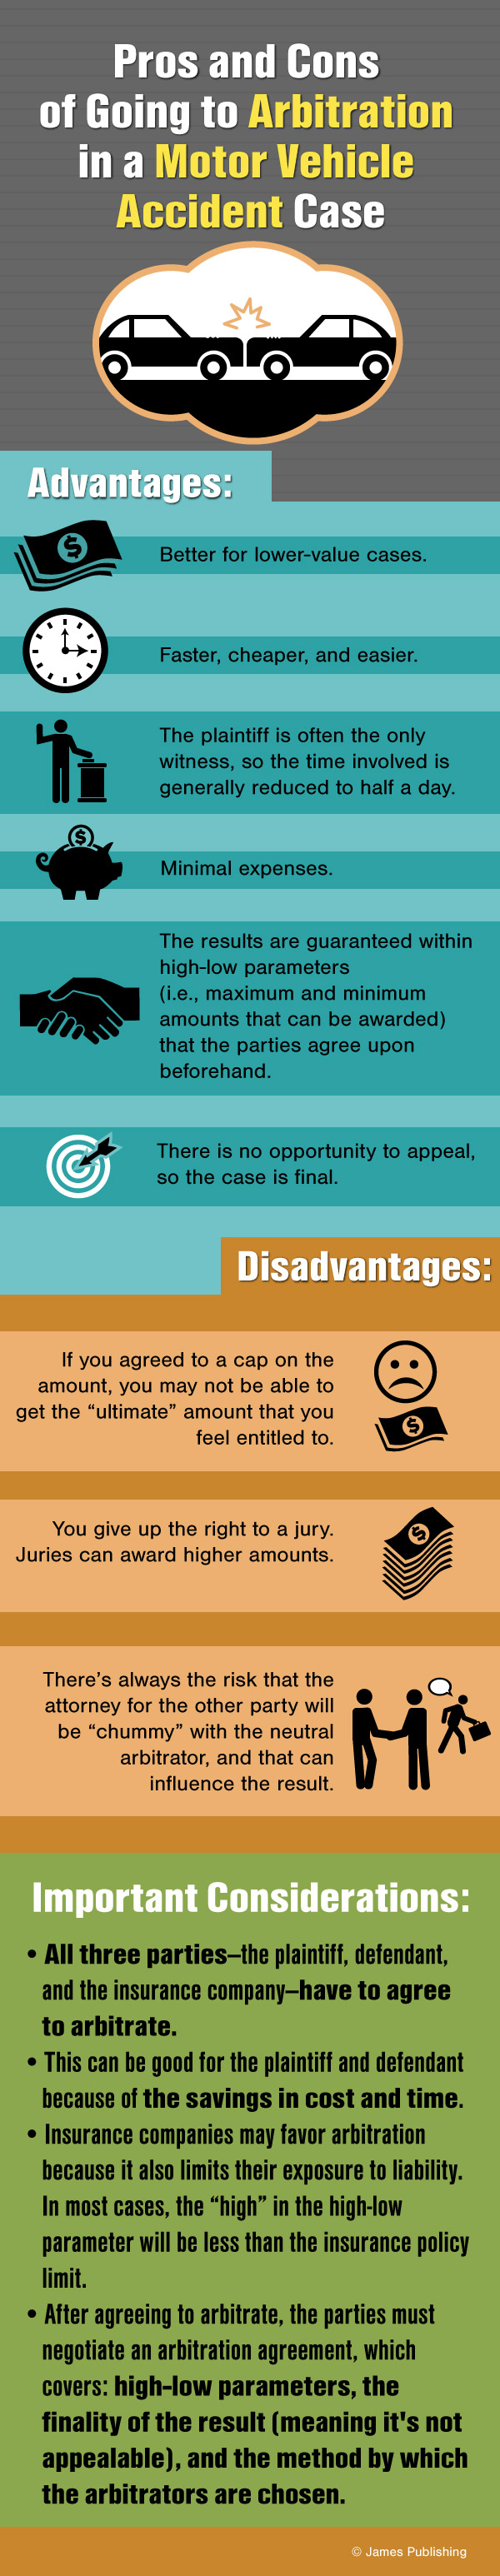 Pros And Cons Of Going Through Arbitration In A Motor Vehicle Accident Case Motor Car Car Accident Accident